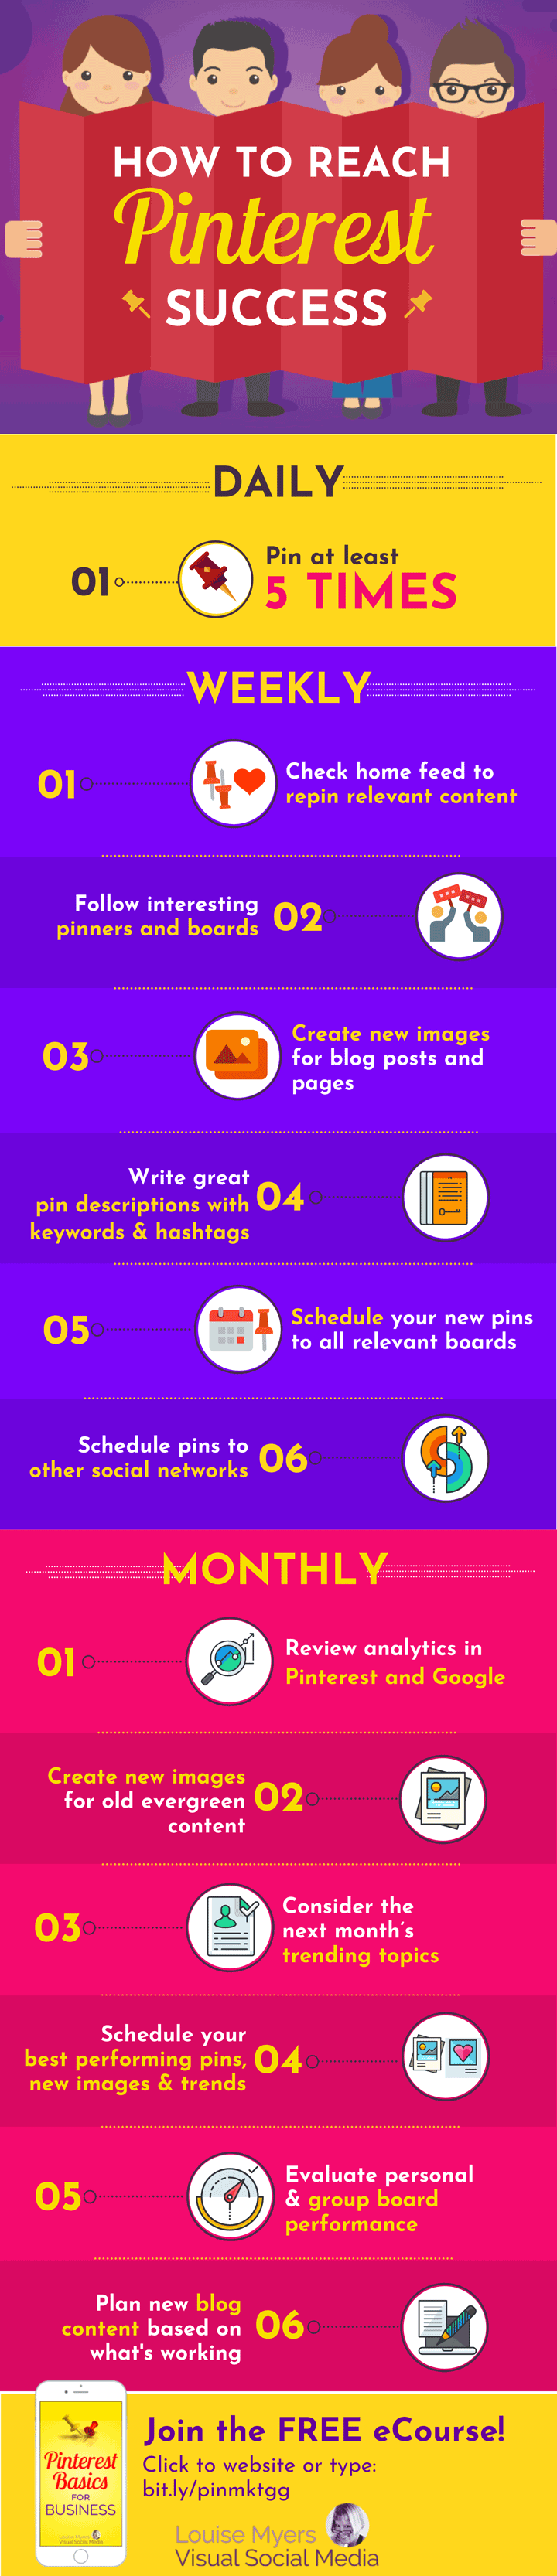 how to succeed with Pinterest marketing infographic